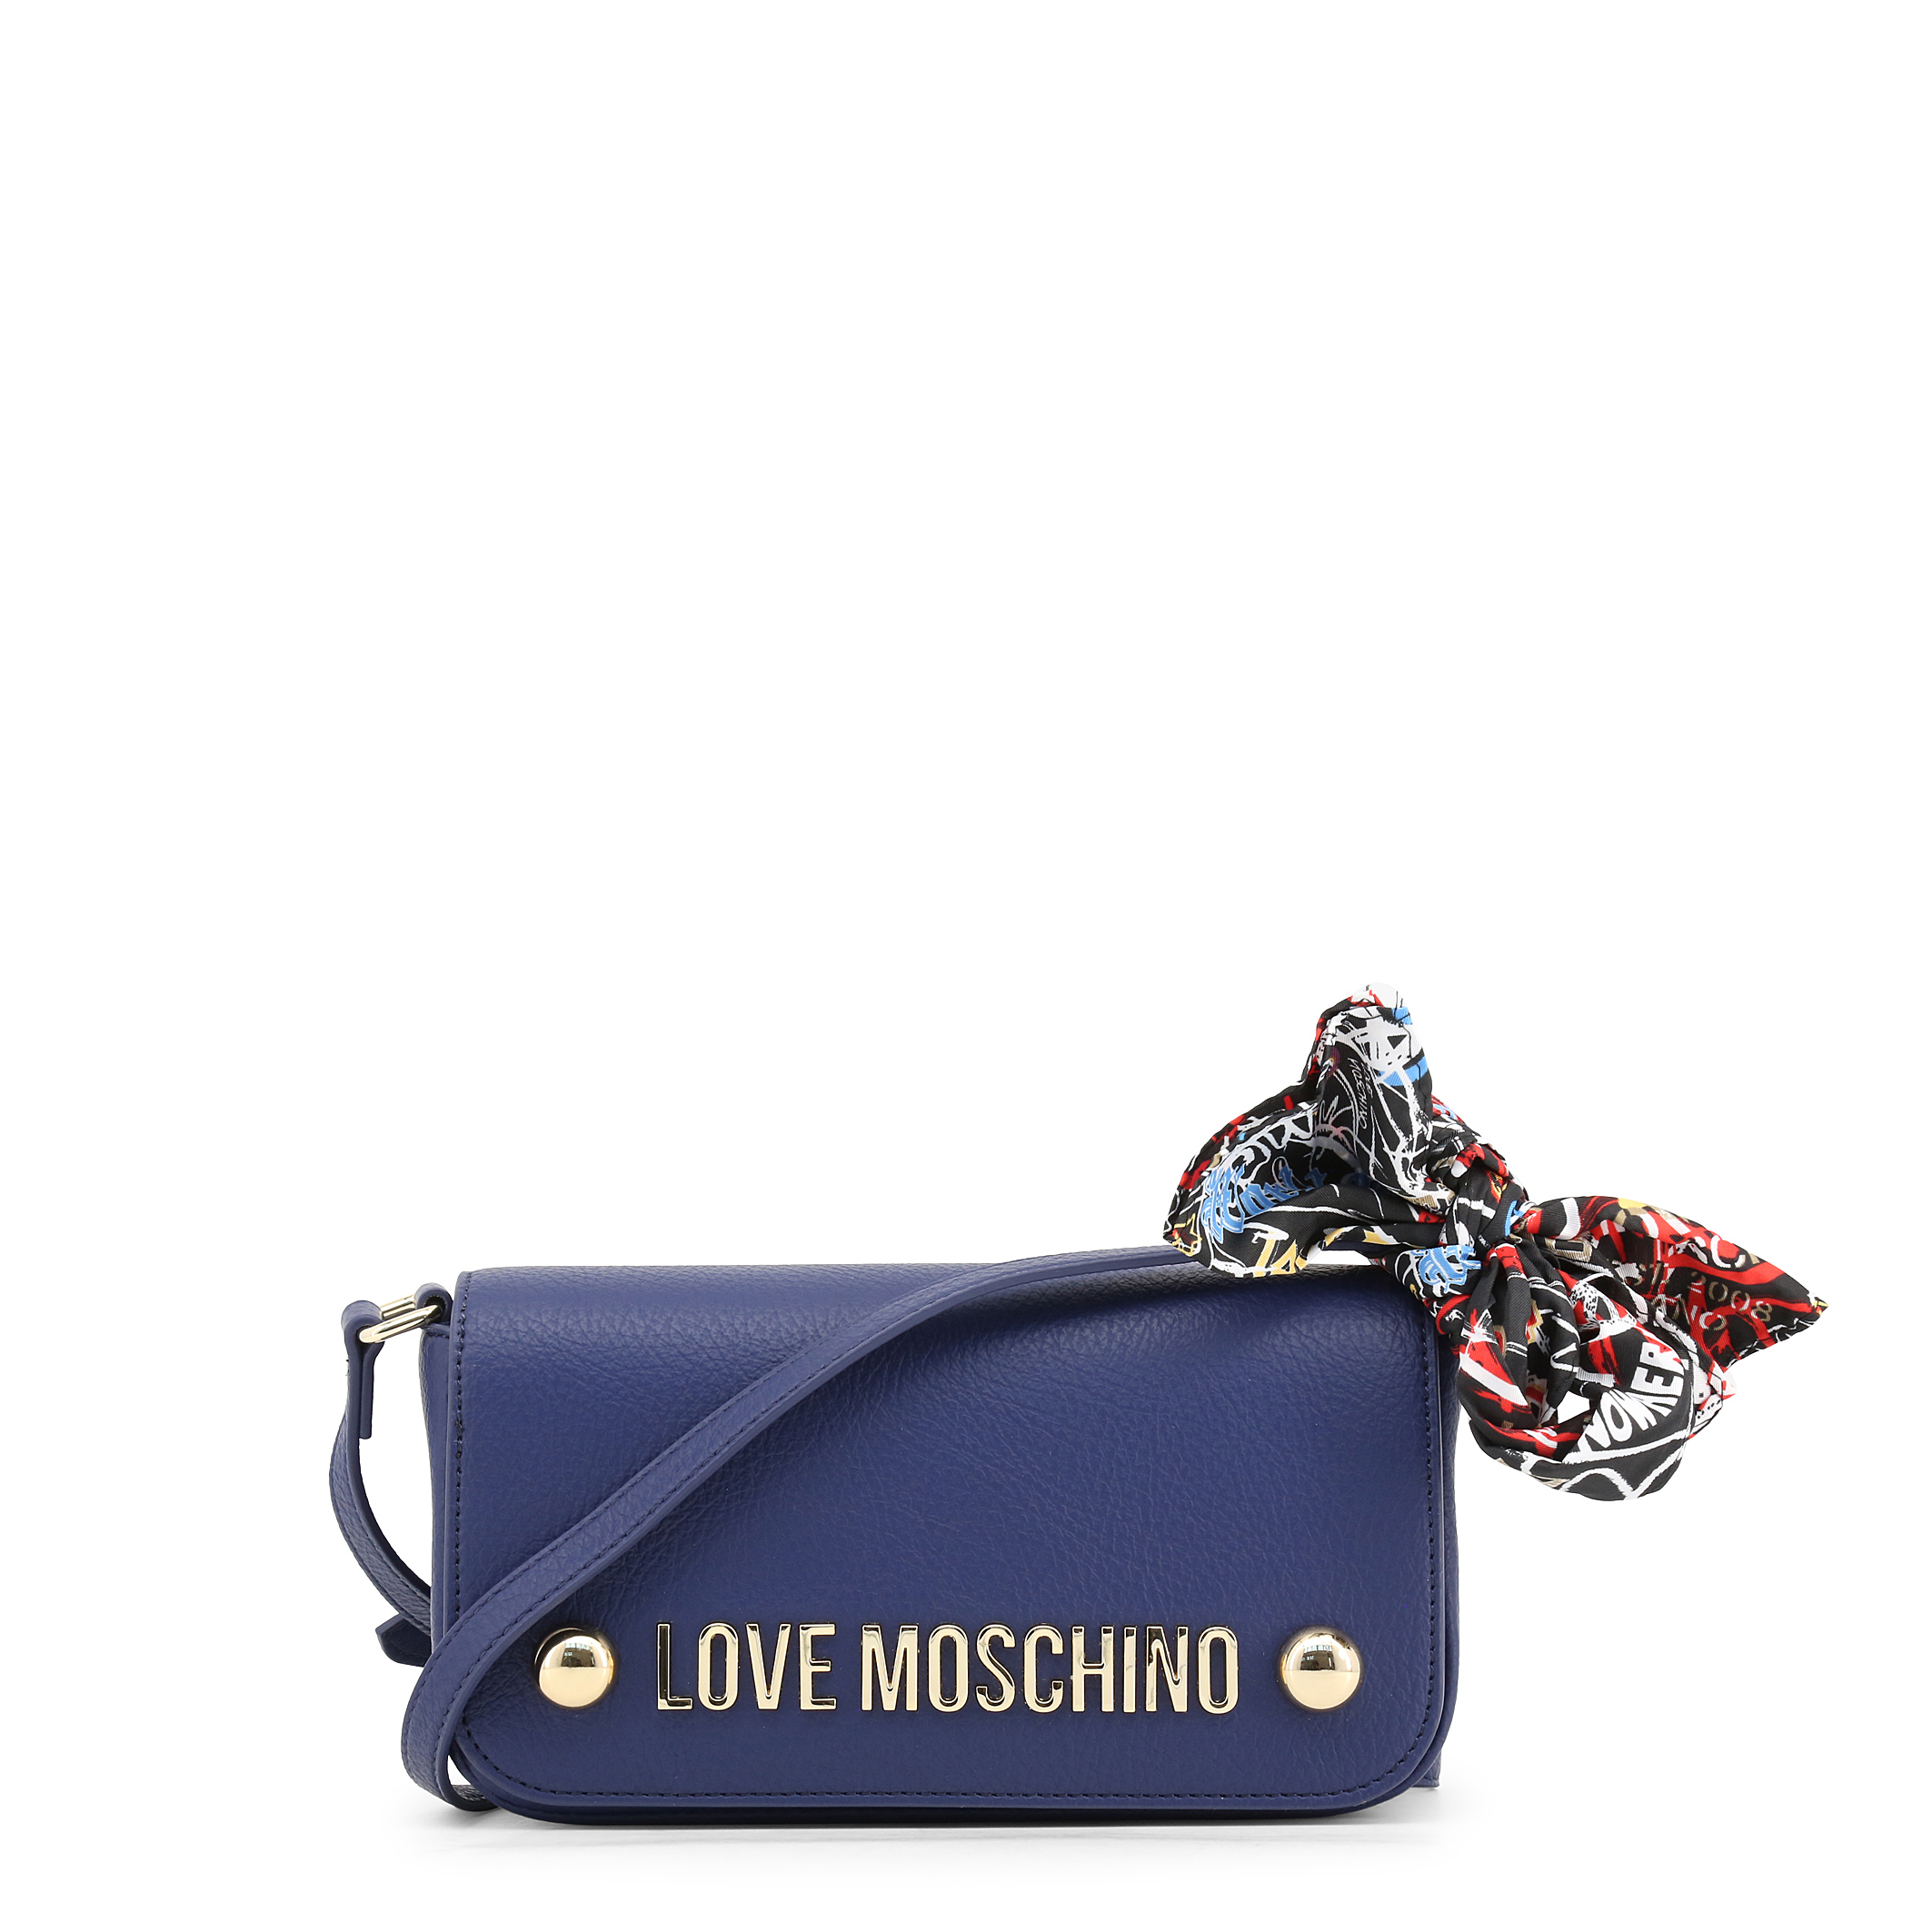 f2ba3f0694 Love Moschino Navy Blue Bag